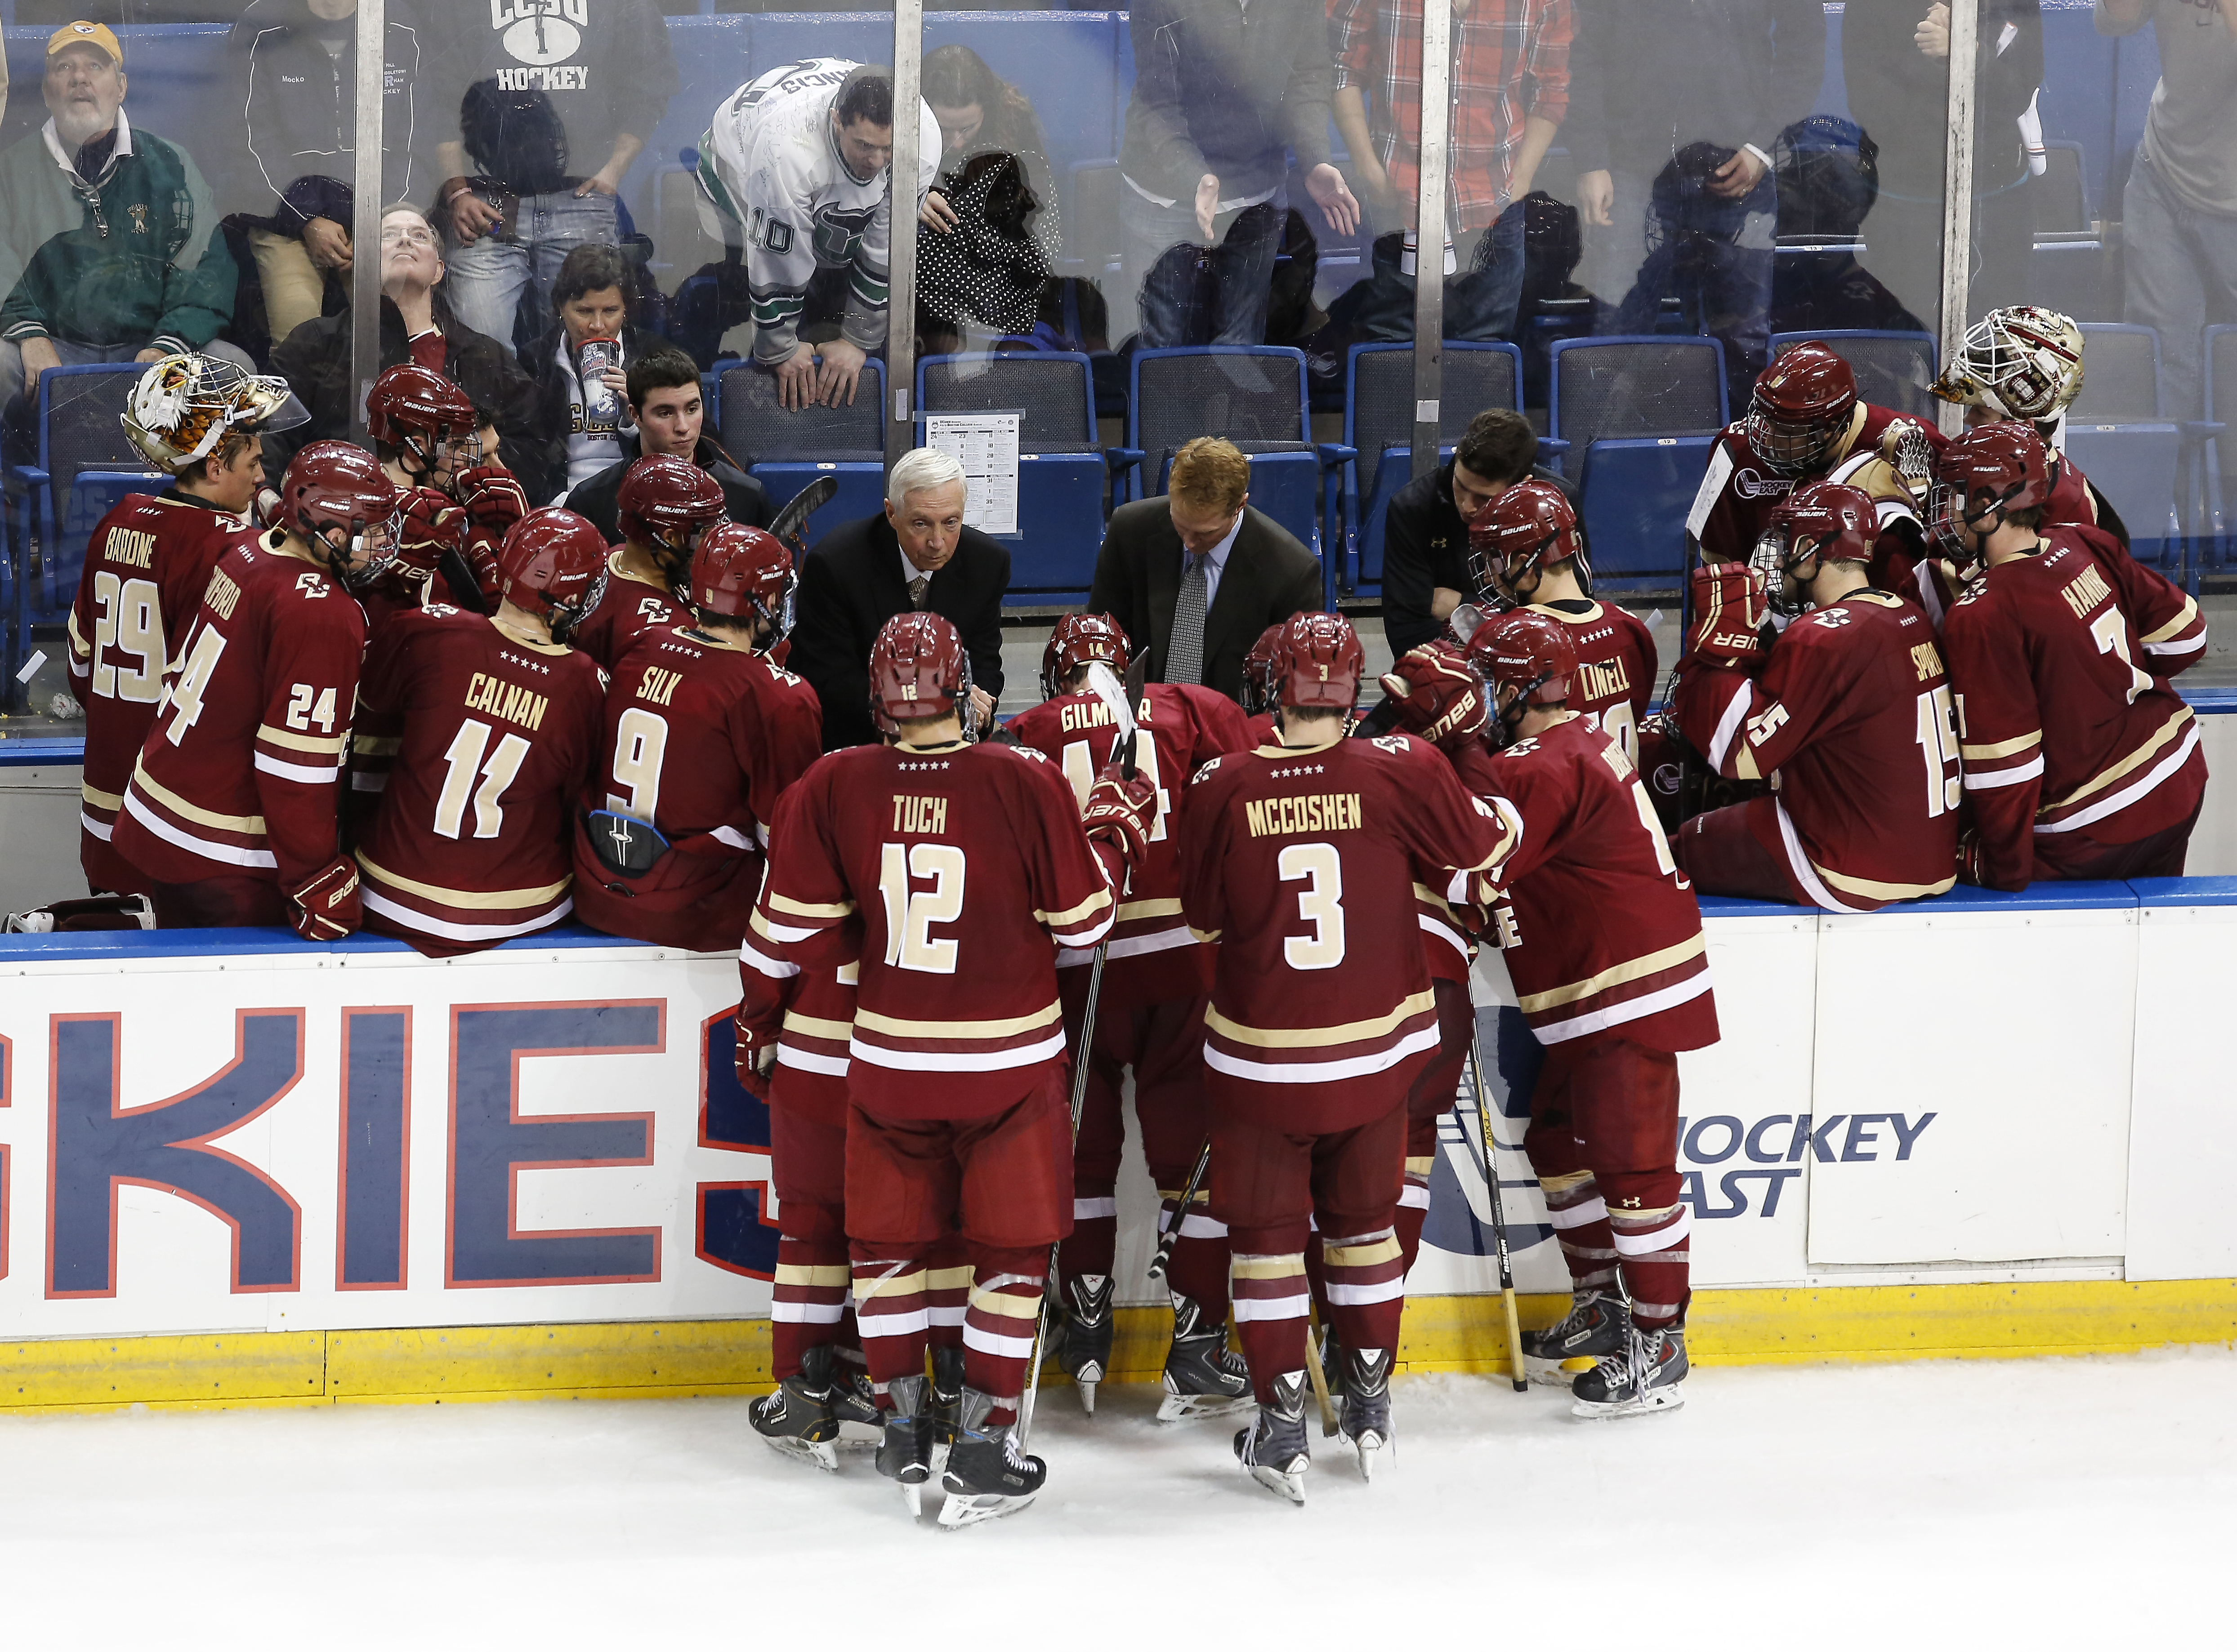 Hockey East: Second Half Hockey East Preview And Storylines